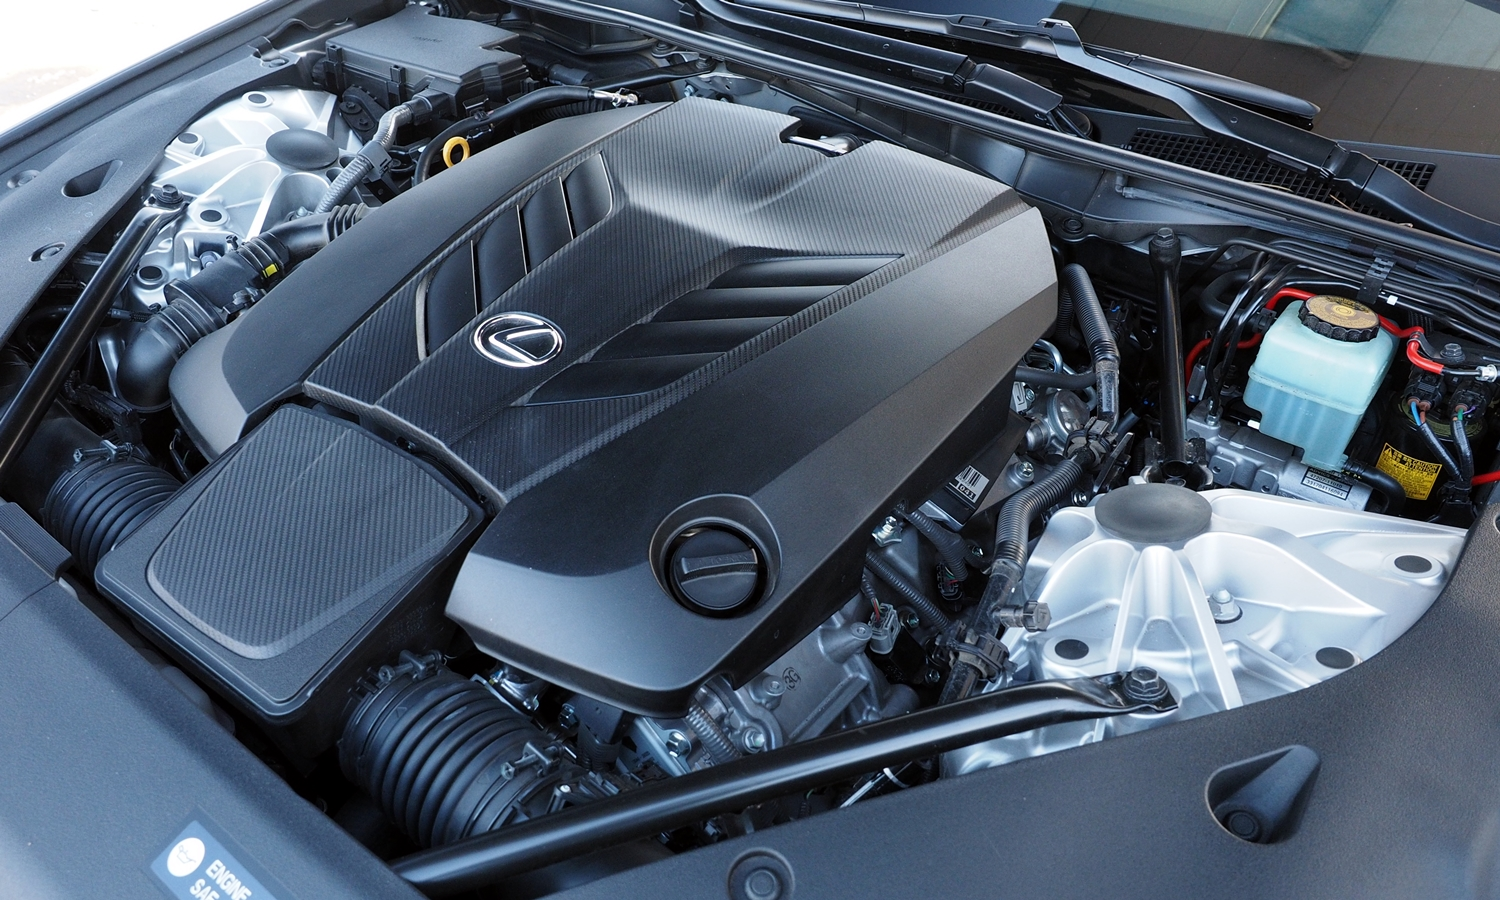 Lexus LC Photos: Lexus LC 500 engine